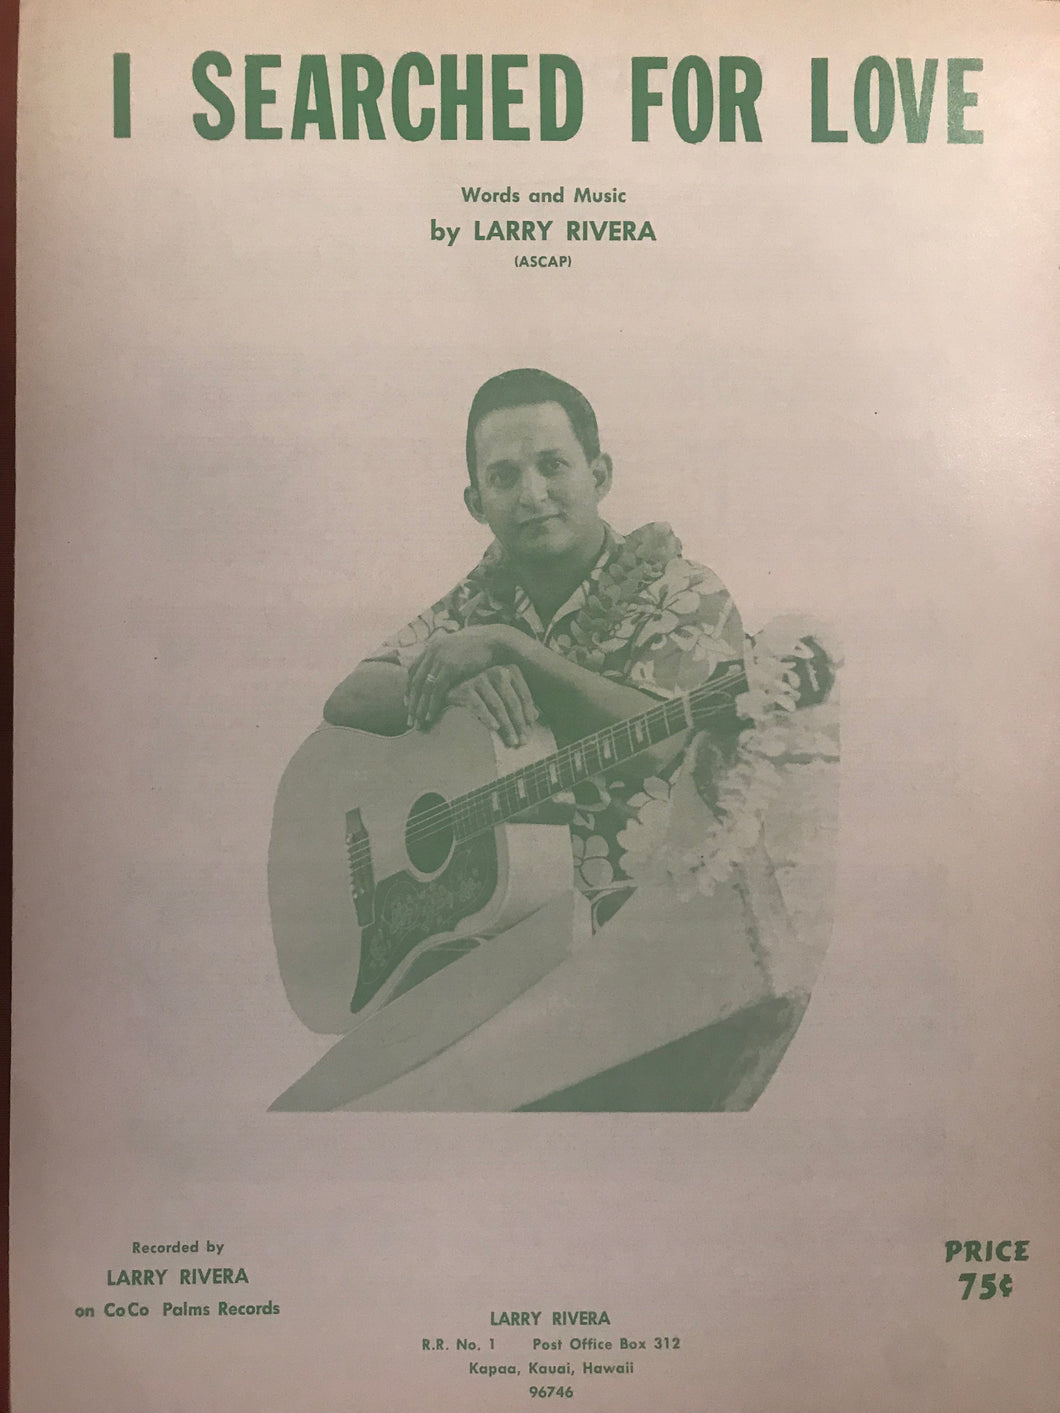 Hawaiian Sheet Music: 'I Searched For Love'